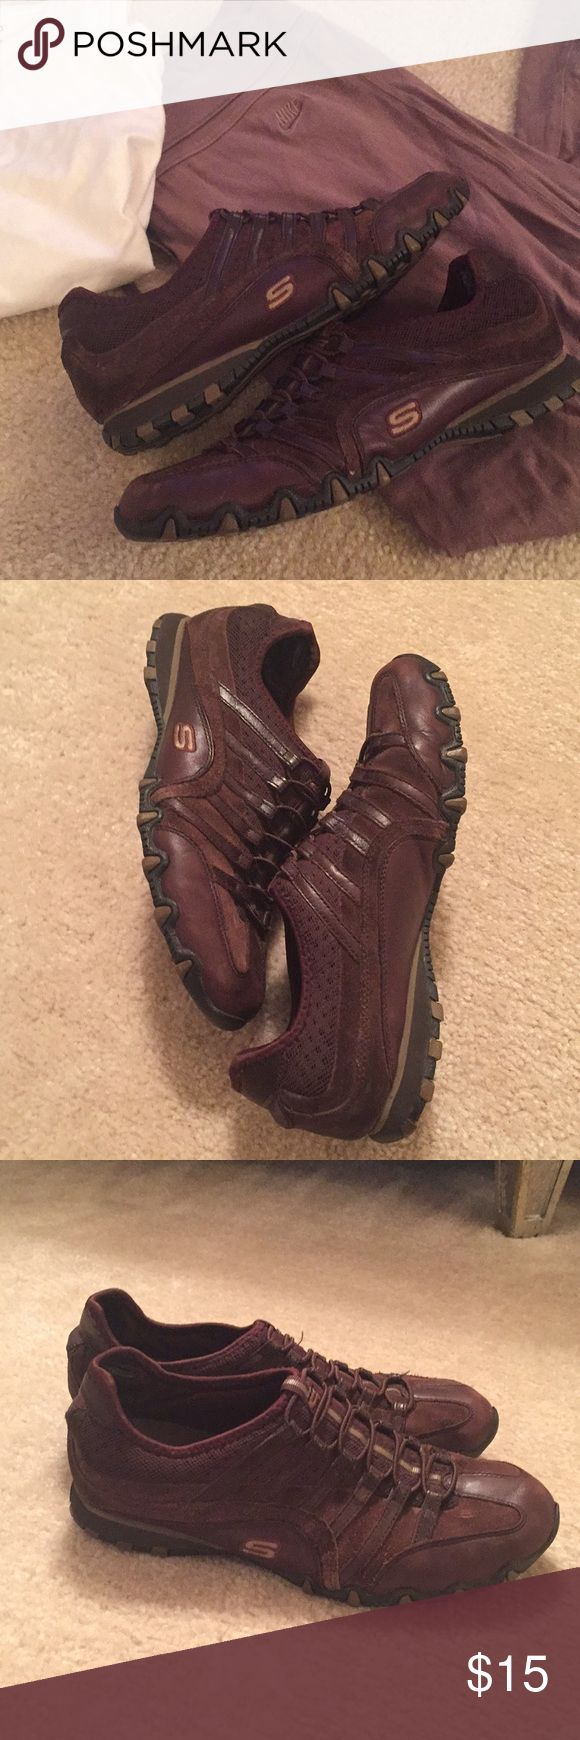 Sketchers Sneakers - Brown 👟 OFFERS WELCOME! 💐  Comfy chocolate brown sneakers that you can just slip on and go. They're barely used so are in good condition. Great for walking and running errands. I have this exact pair in black that I wear all the time so these little brown cuties just don't get used. Skechers Shoes Sneakers